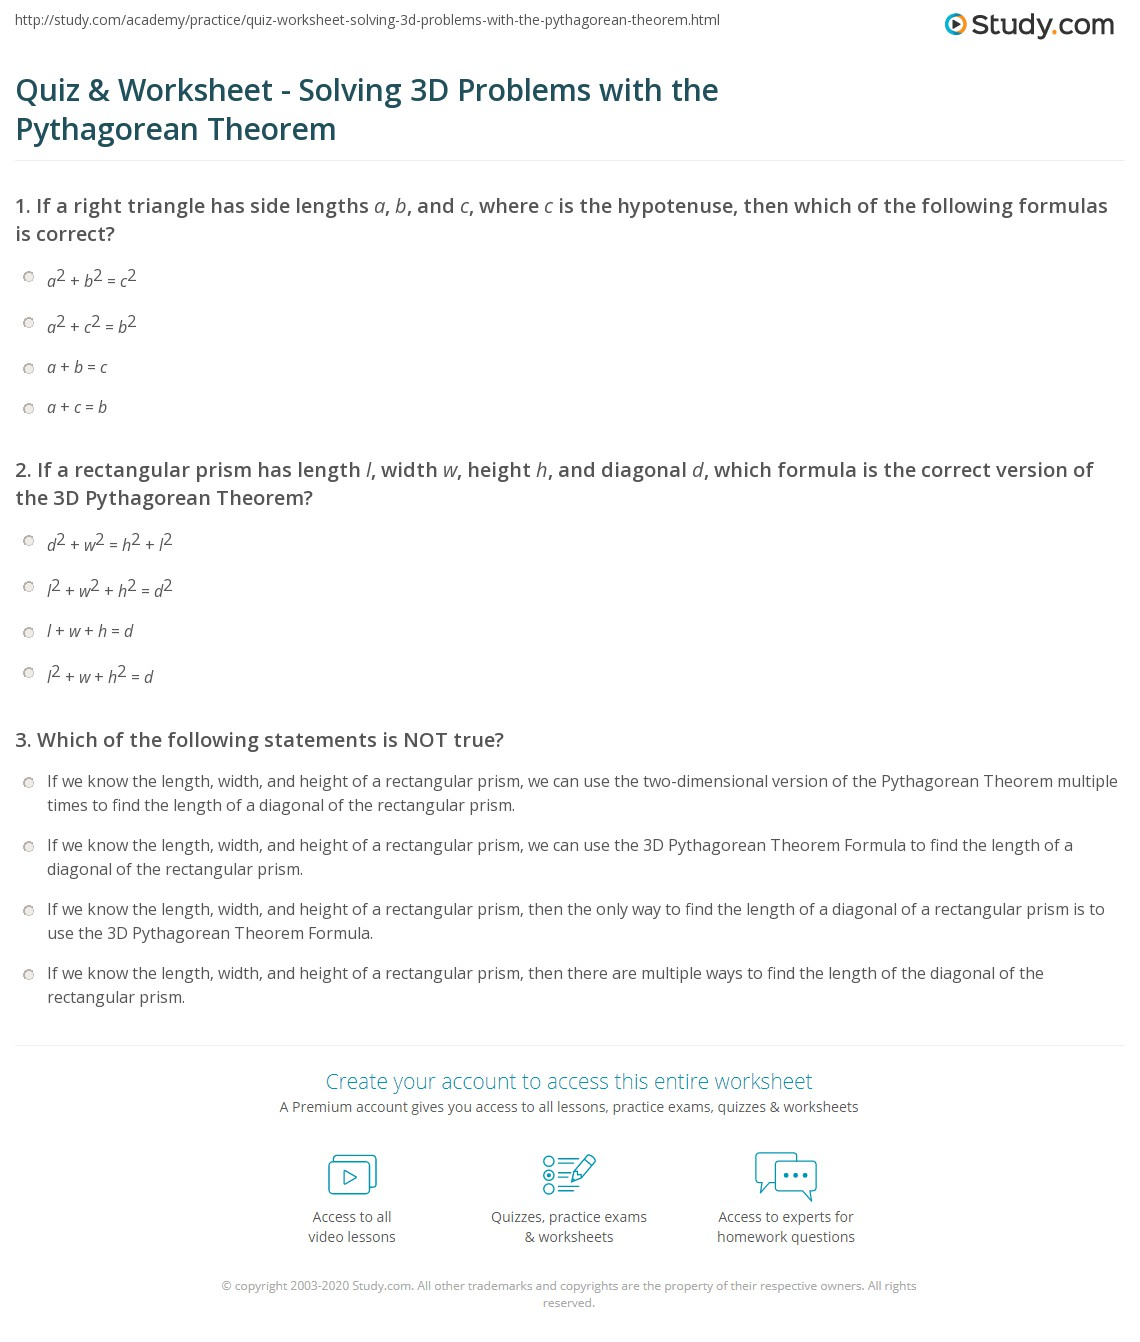 worksheet Pythagorean Theorem Problems Worksheet quiz worksheet solving 3d problems with the pythagorean theorem print using to solve worksheet